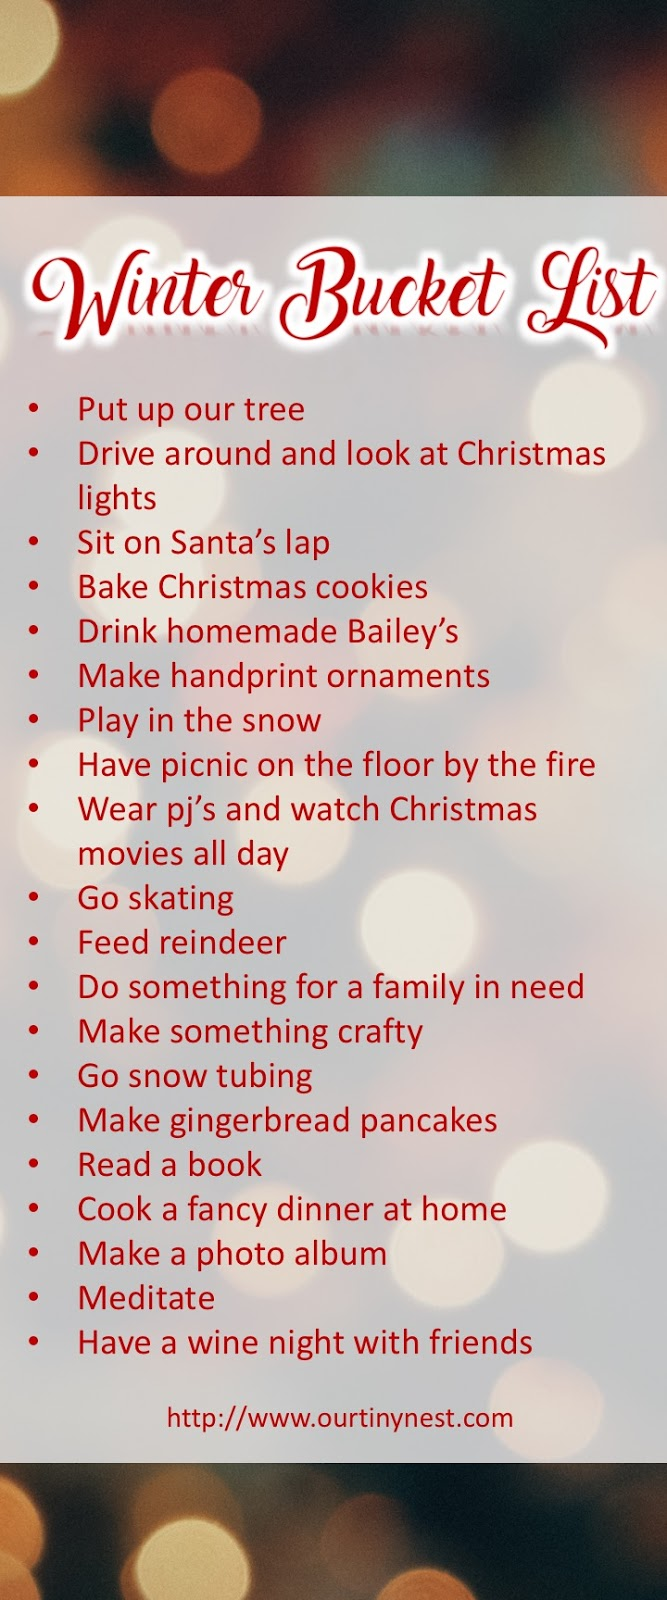 what are some things on your winter bucket list this year